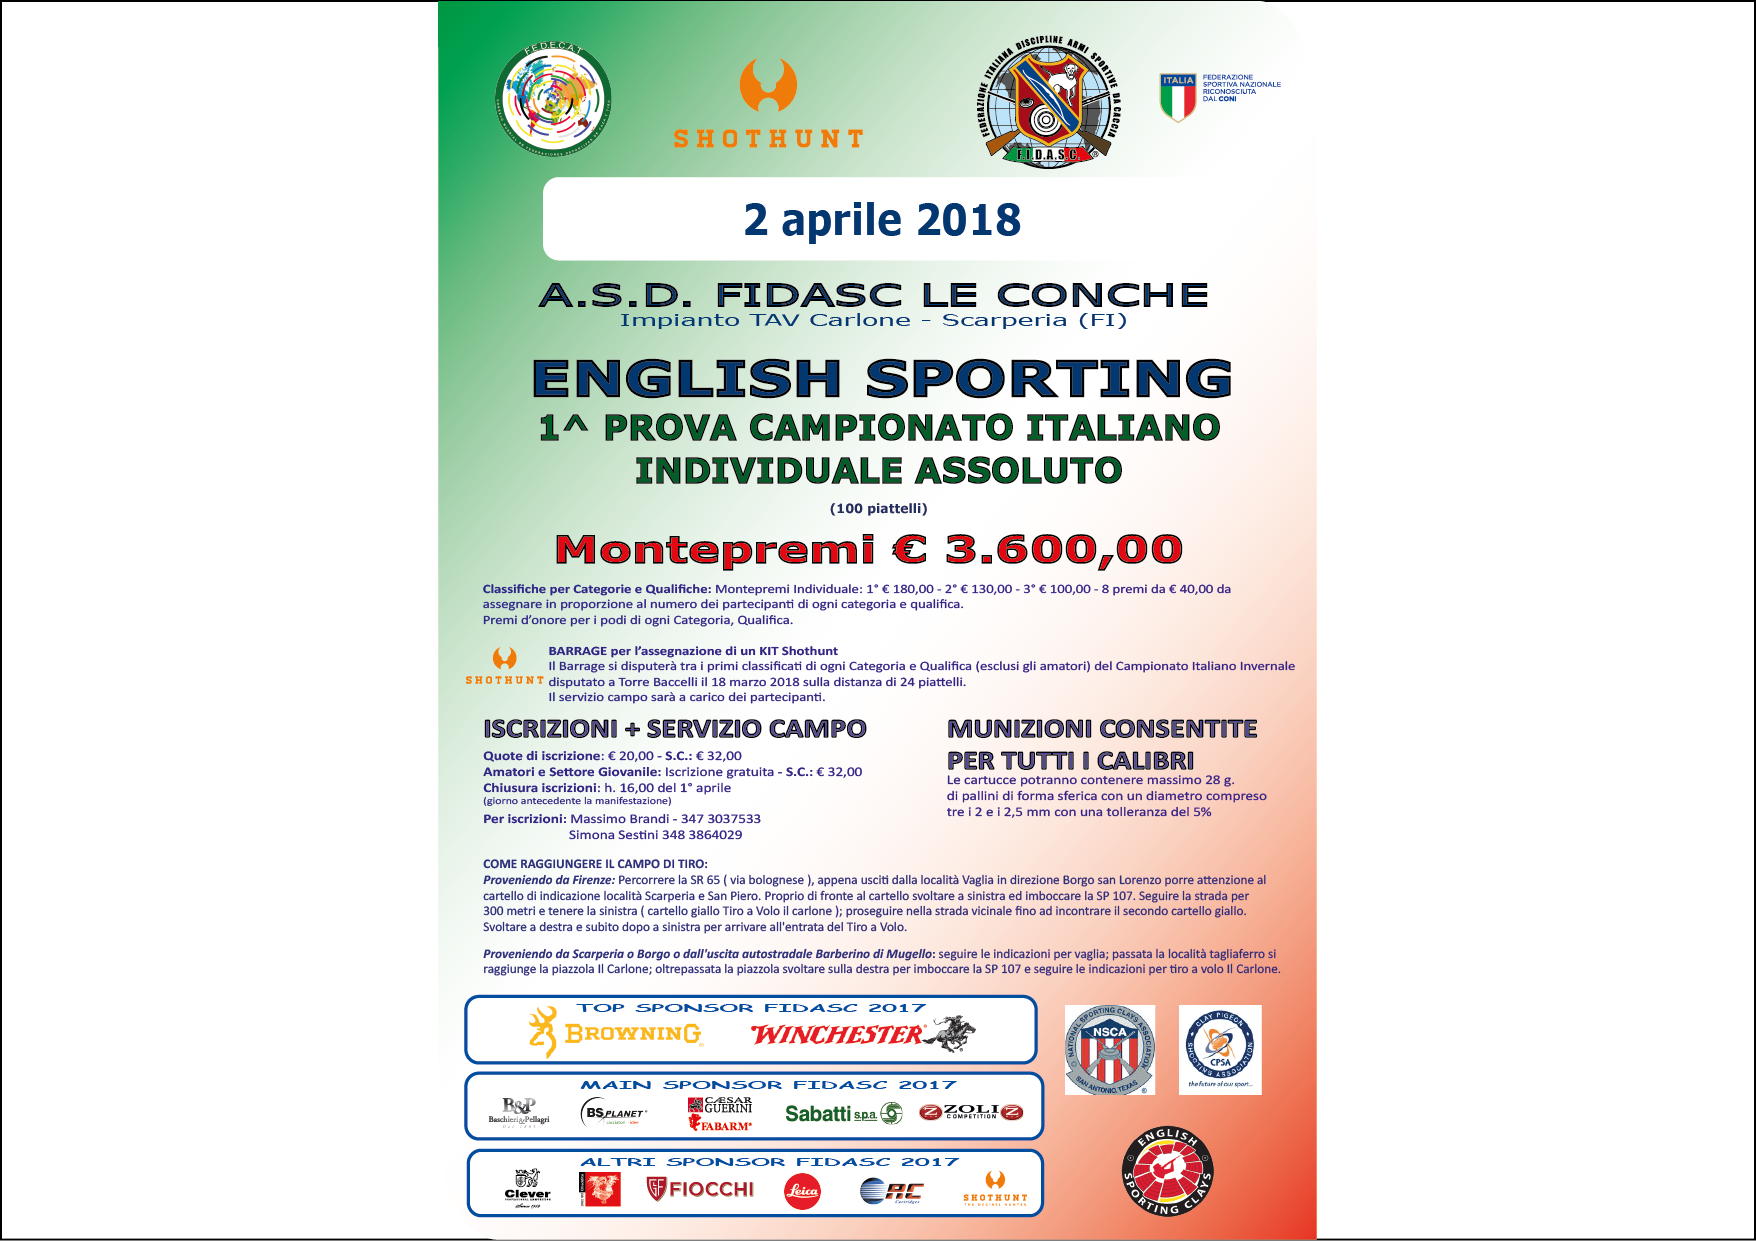 English Sporting - 1^ Prova Campionato Italiano Assoluto